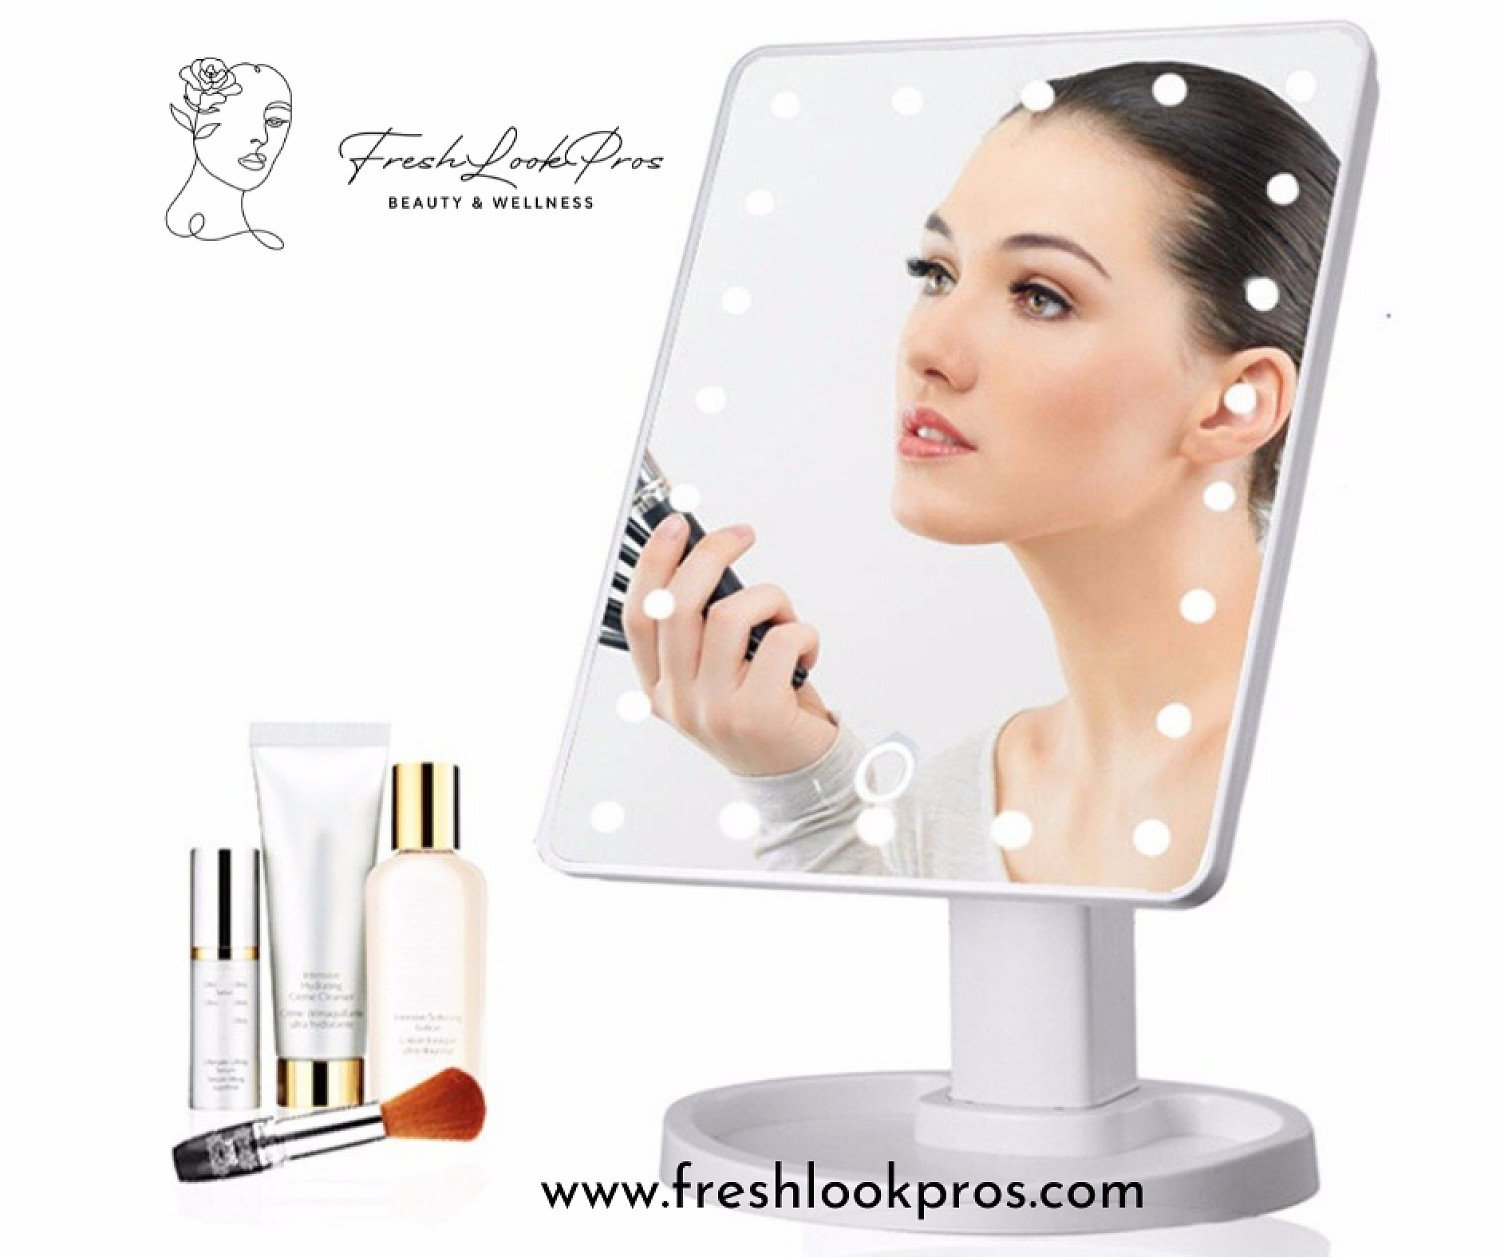 Get Your Glam On with this Adjustable LED Mirror from Freshlookpros!